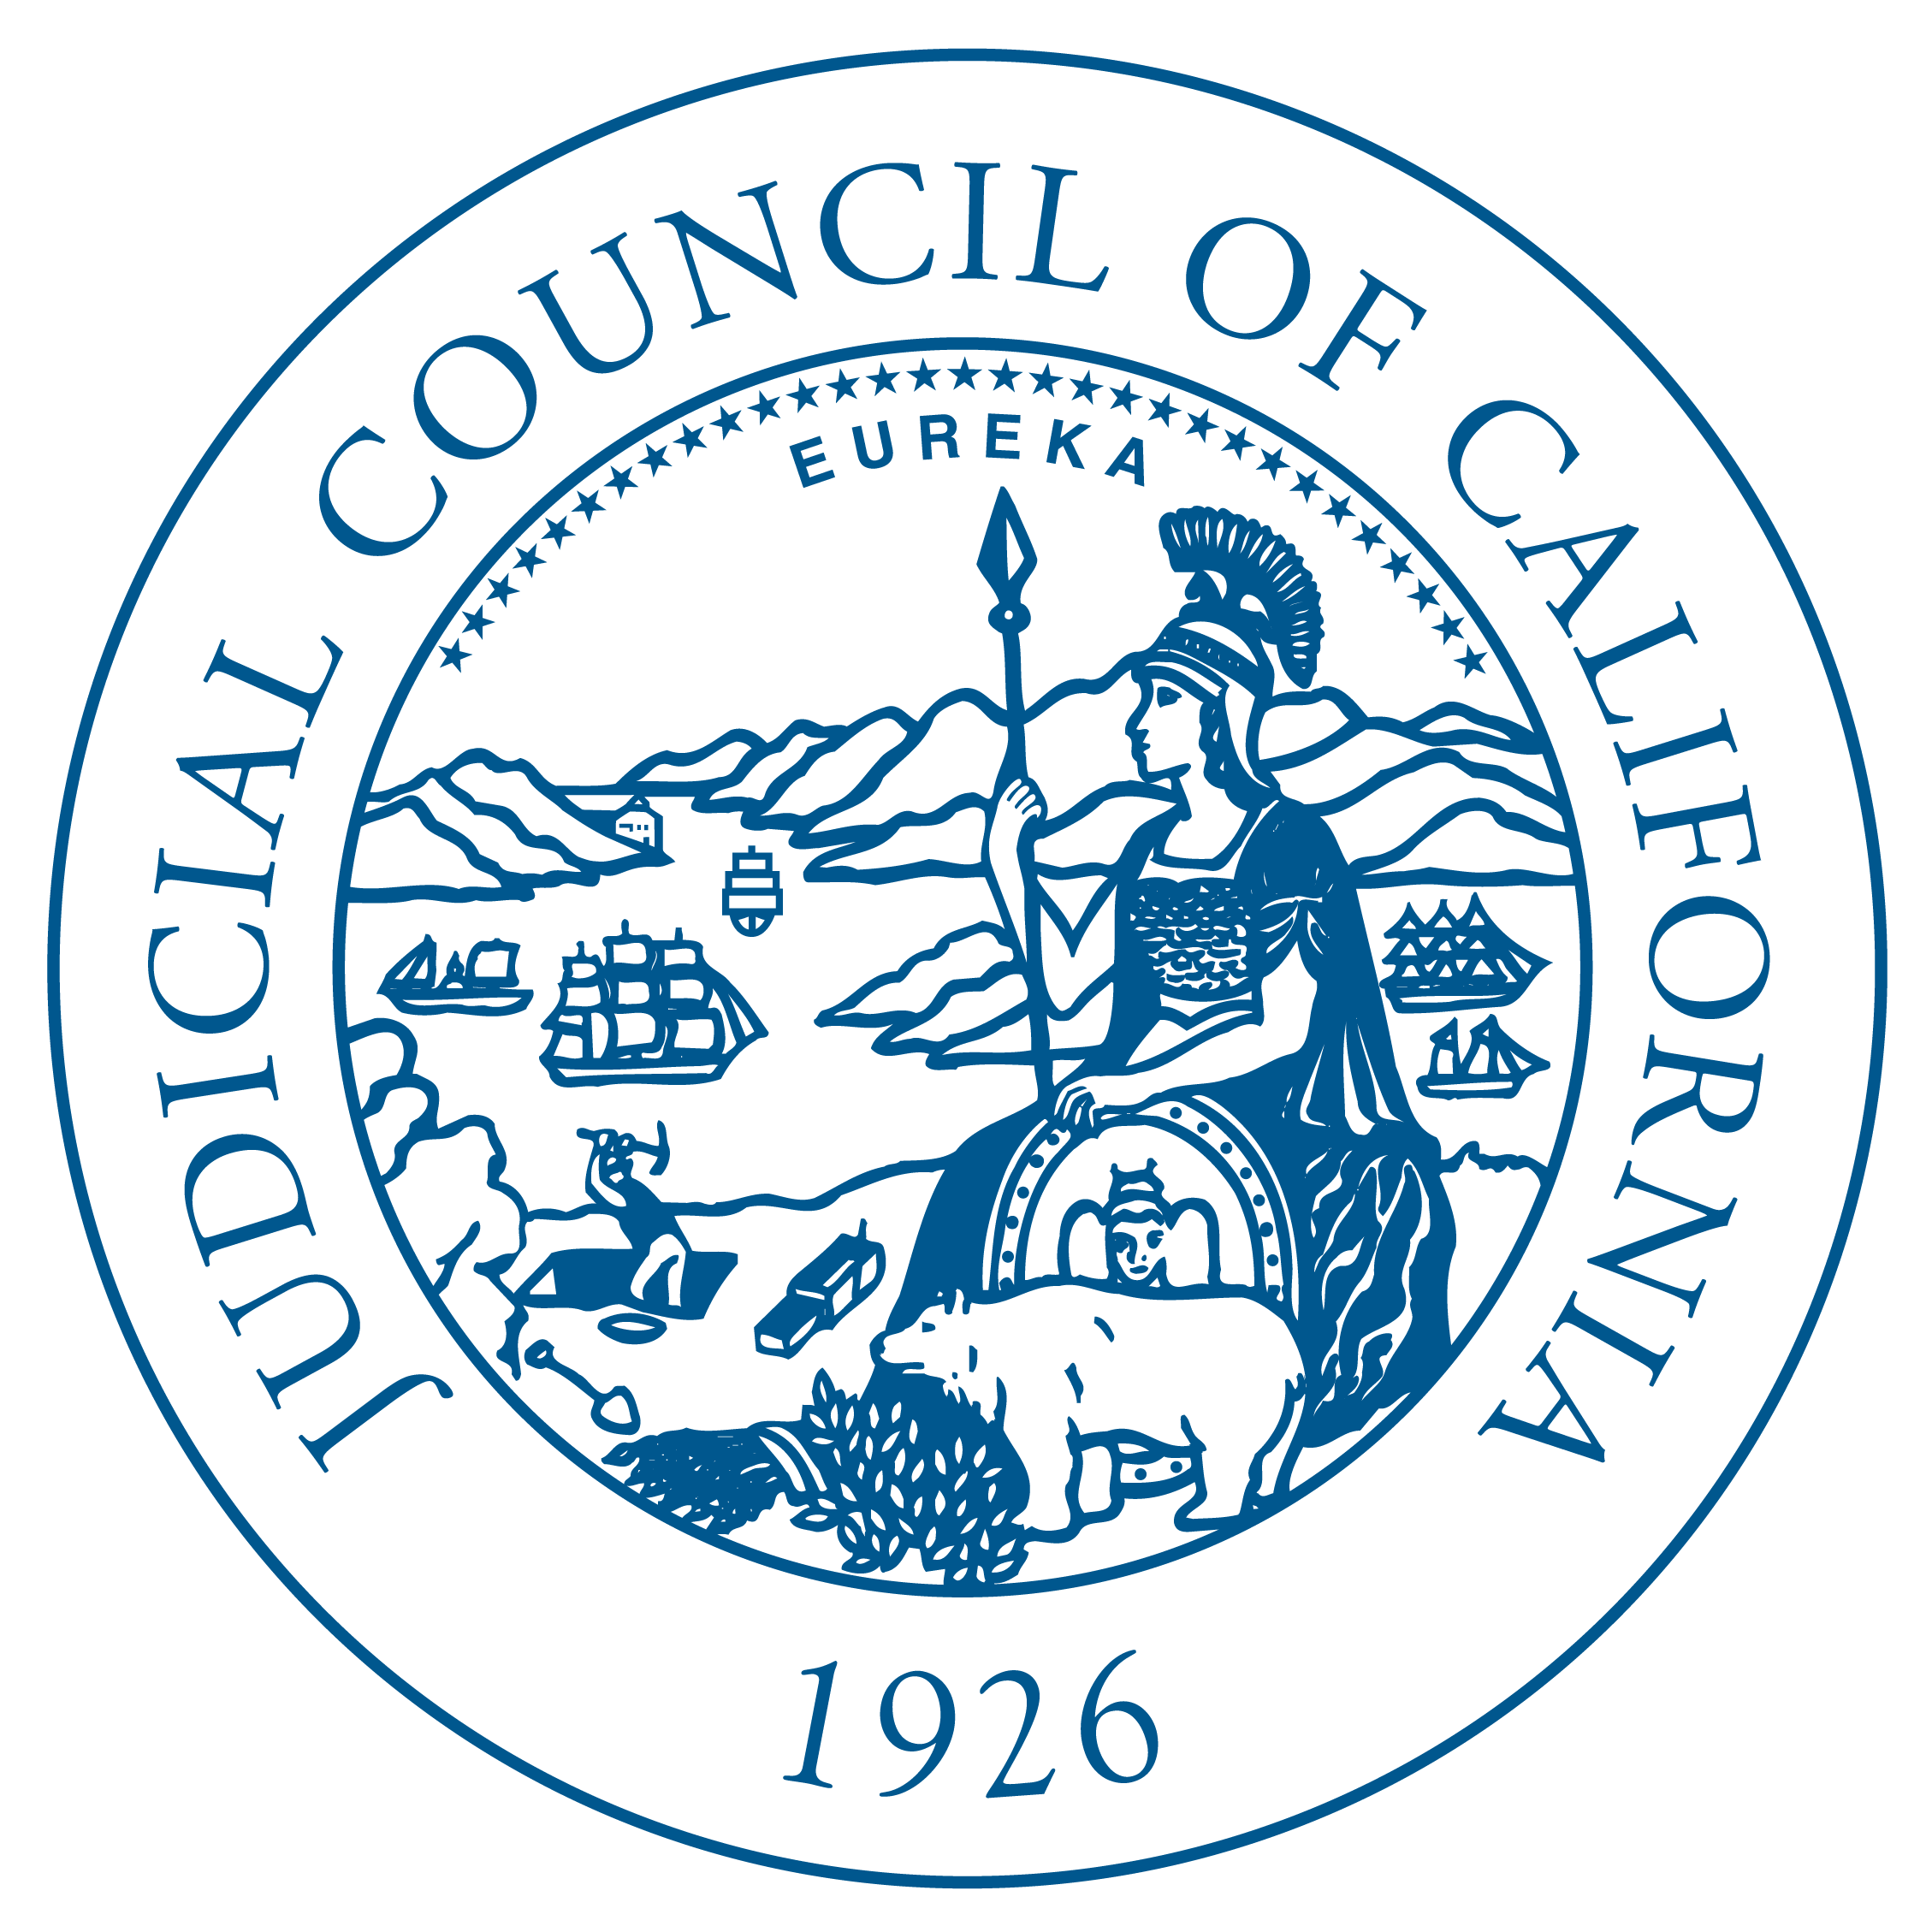 Judicial council meeting california. Migration drawing court banner black and white download